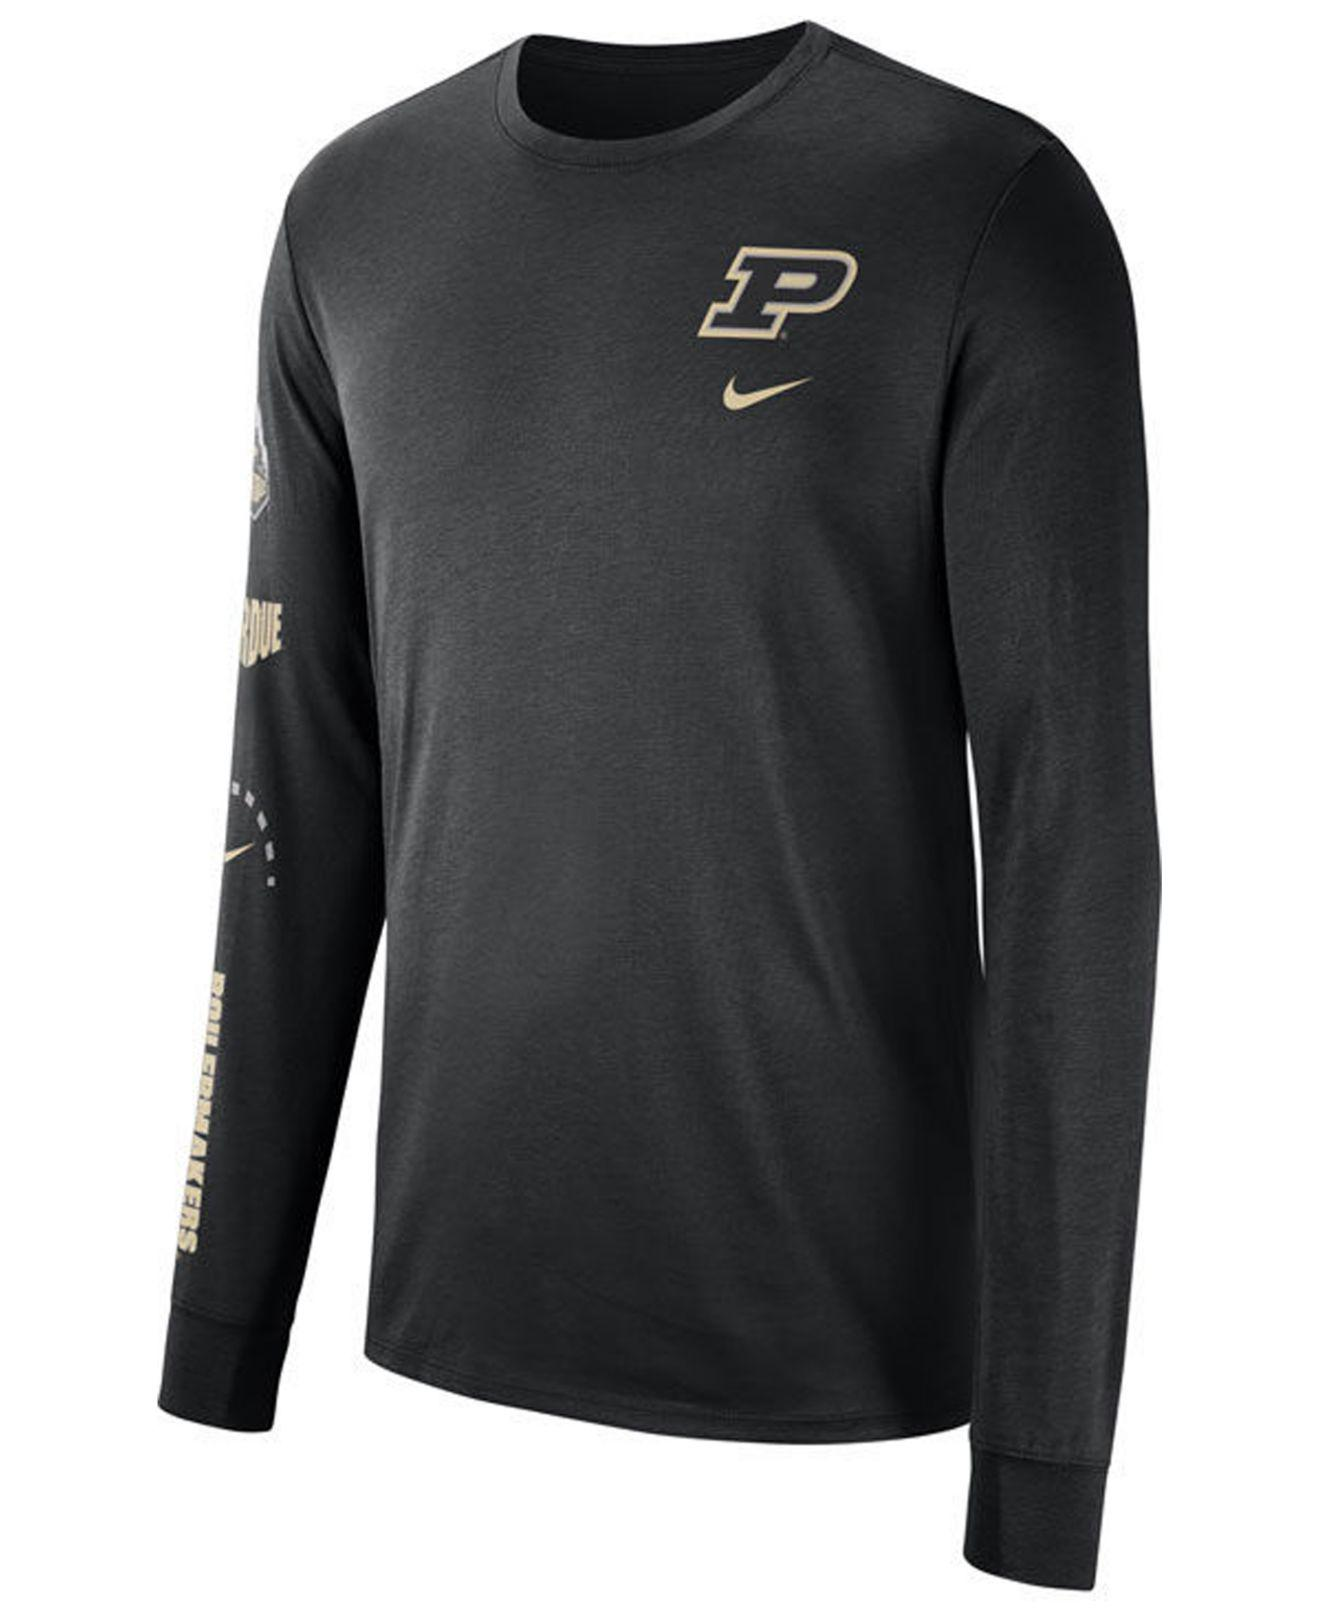 909b9ce8f48 Lyst - Nike Purdue Boilermakers Long Sleeve Basketball T-shirt in ...